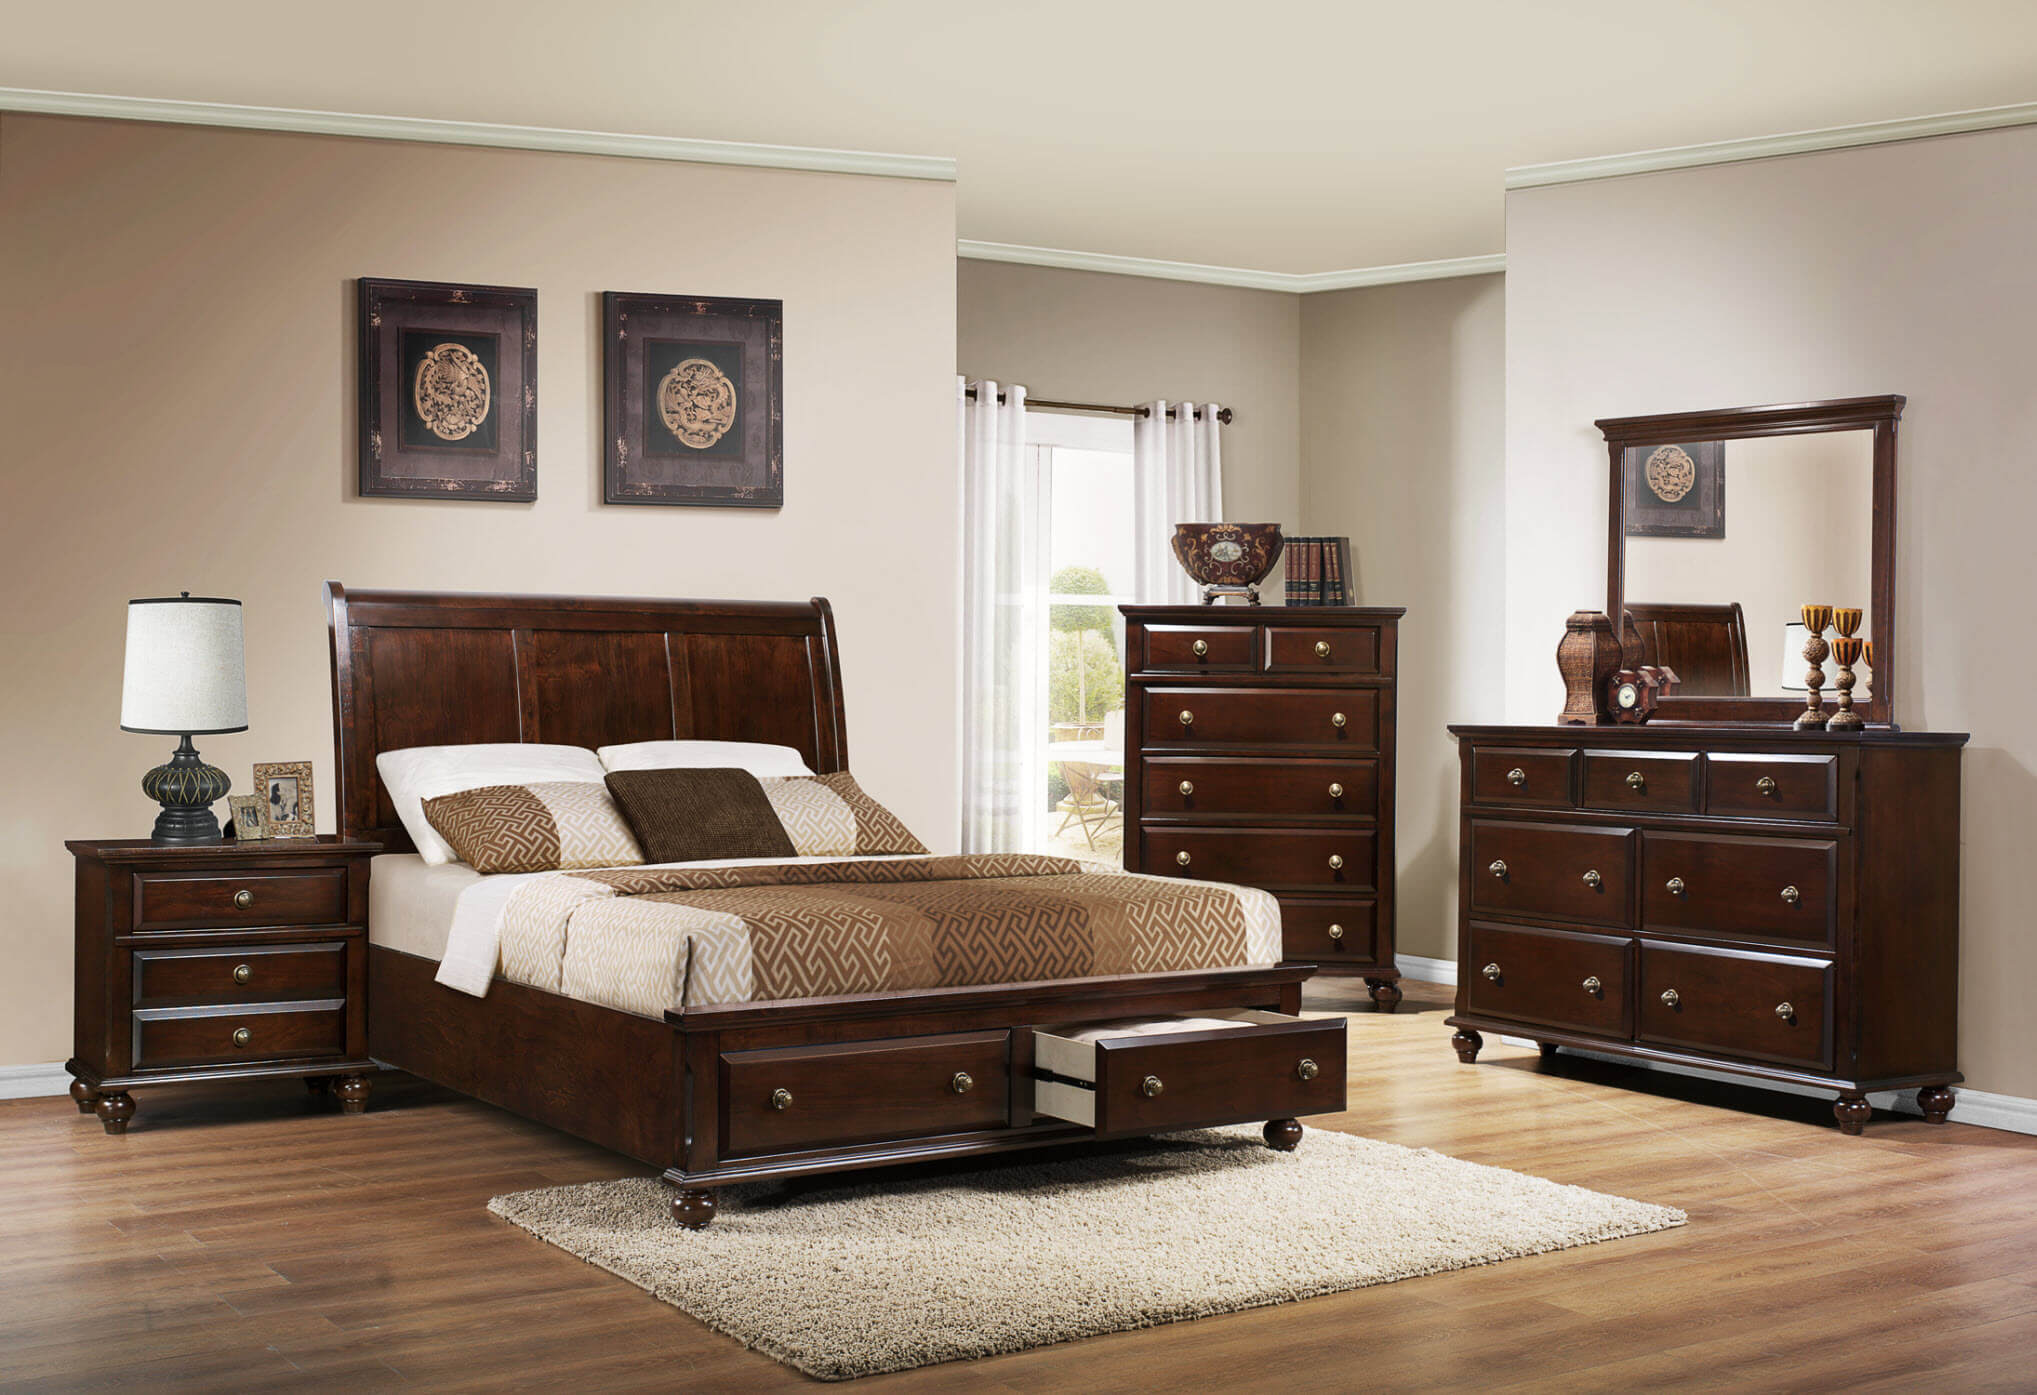 B6075 Portsmouth Bedroom Set by Crown Mark